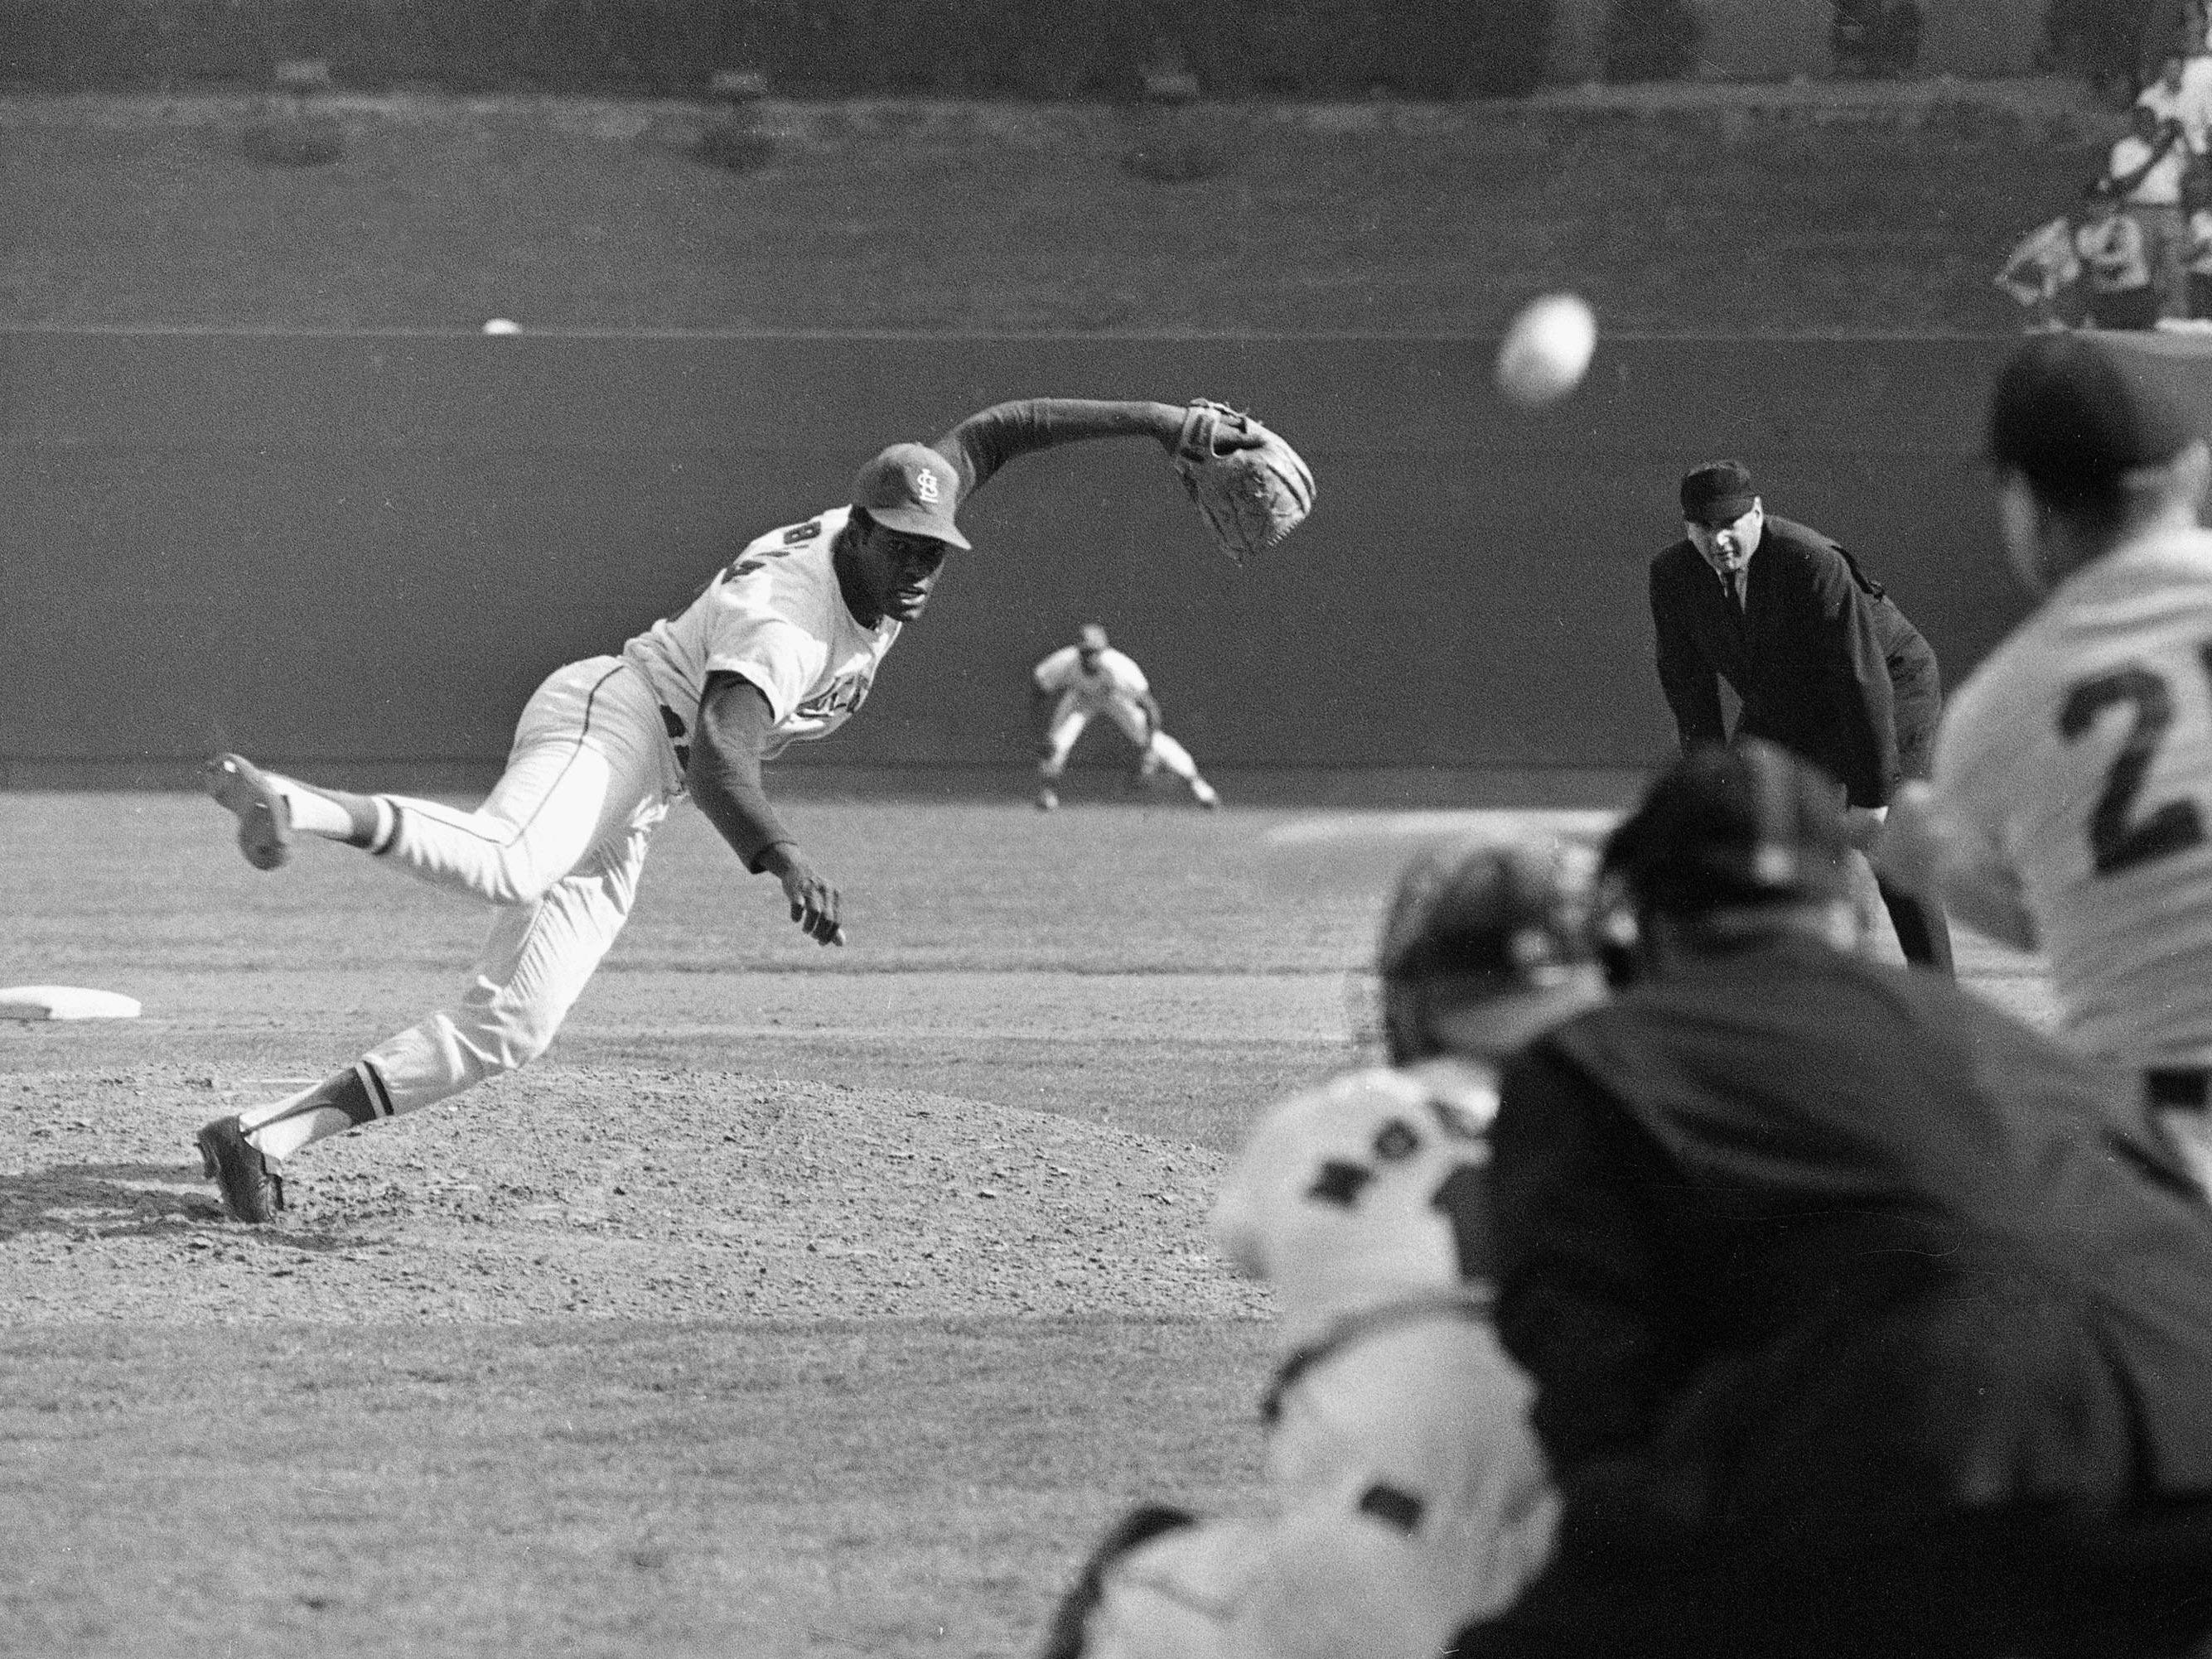 St. Louis Cardinals ace pitcher Bob Gibson fires the ball at Detroit Tigers Norm Cash in the ninth inning of the first game of the 1968 World Series at Busch stadium in St. Louis, Mo. on Oct. 2, 1968.